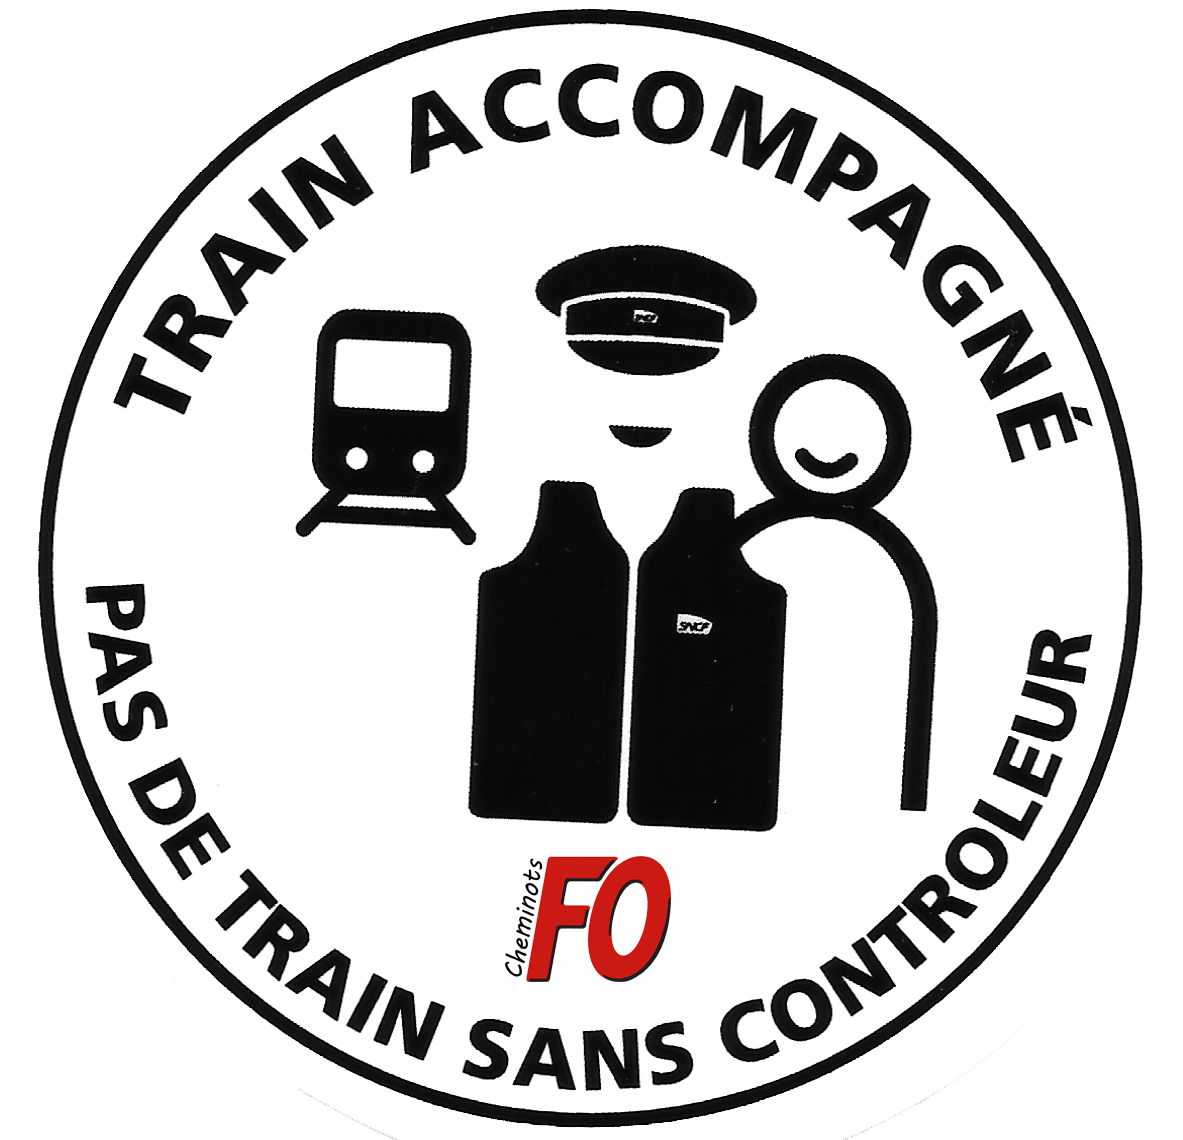 Pas de train sans controleur